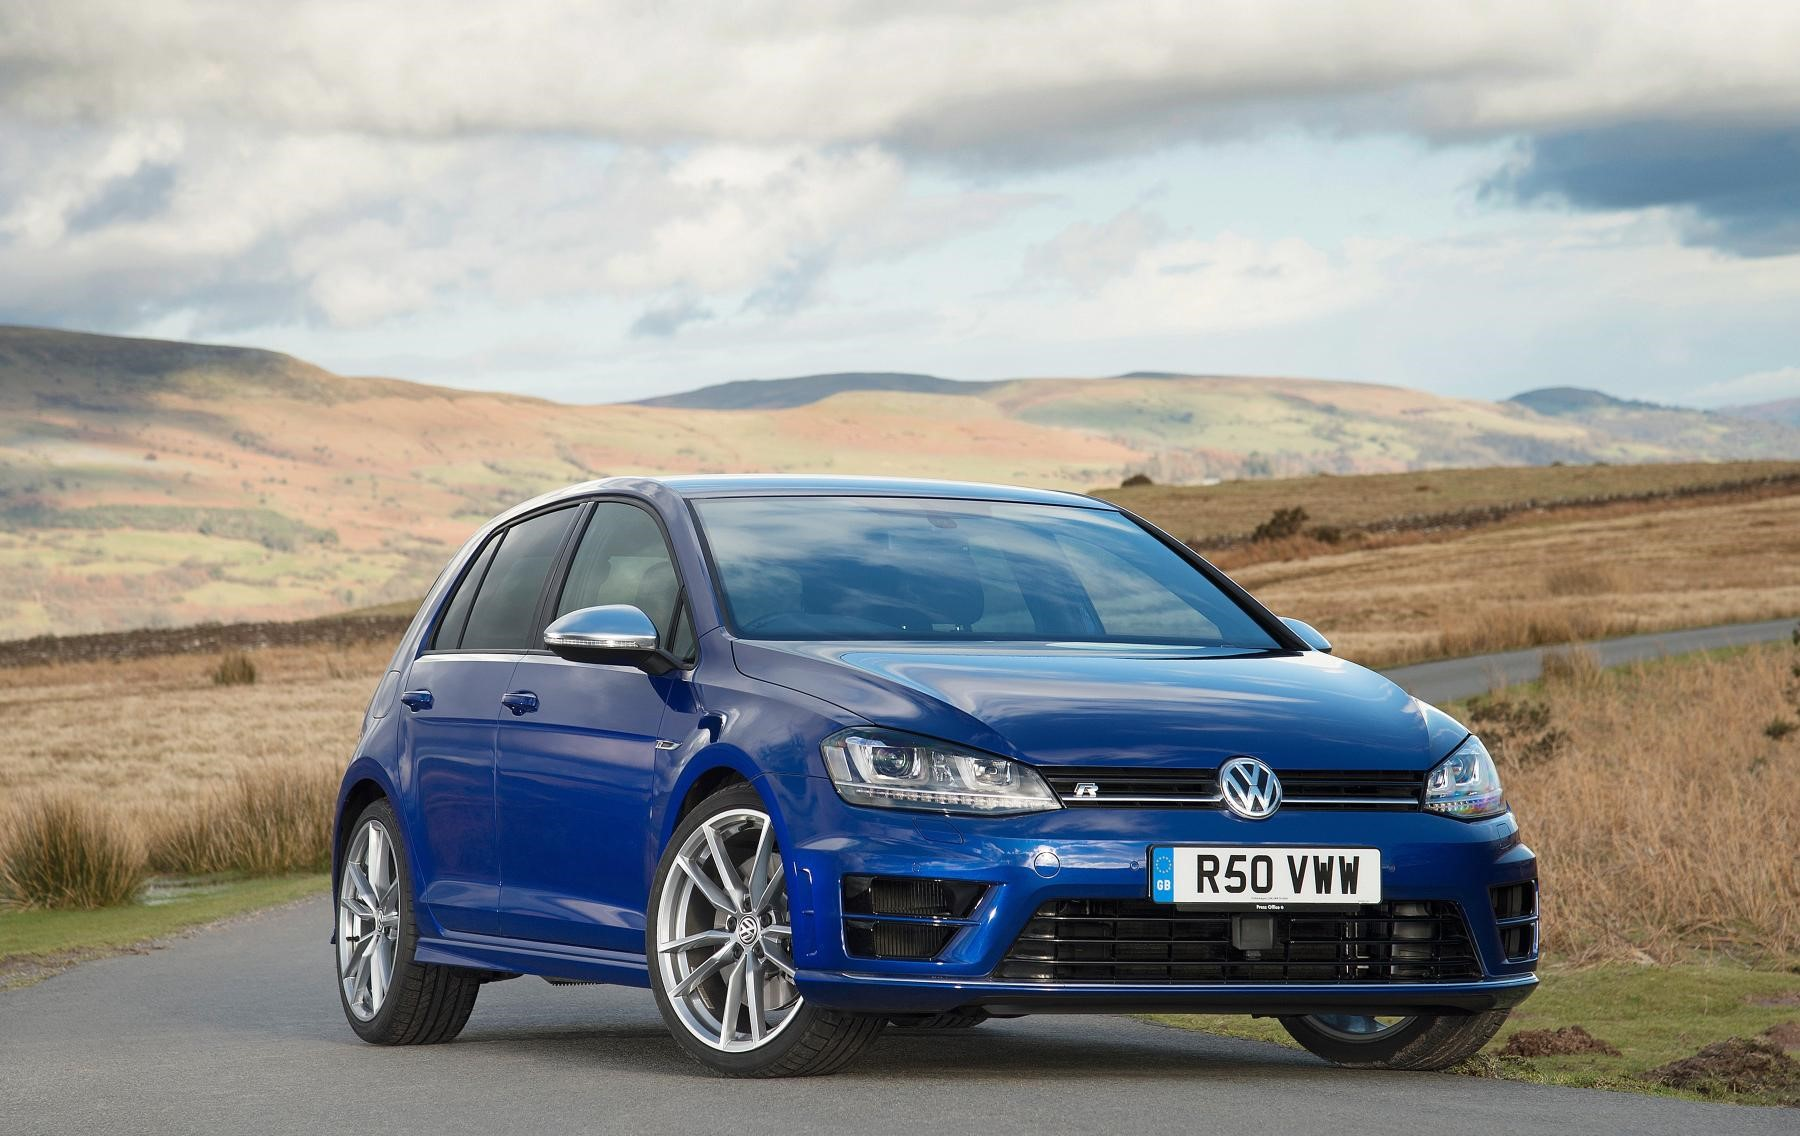 Golf R front view in blue